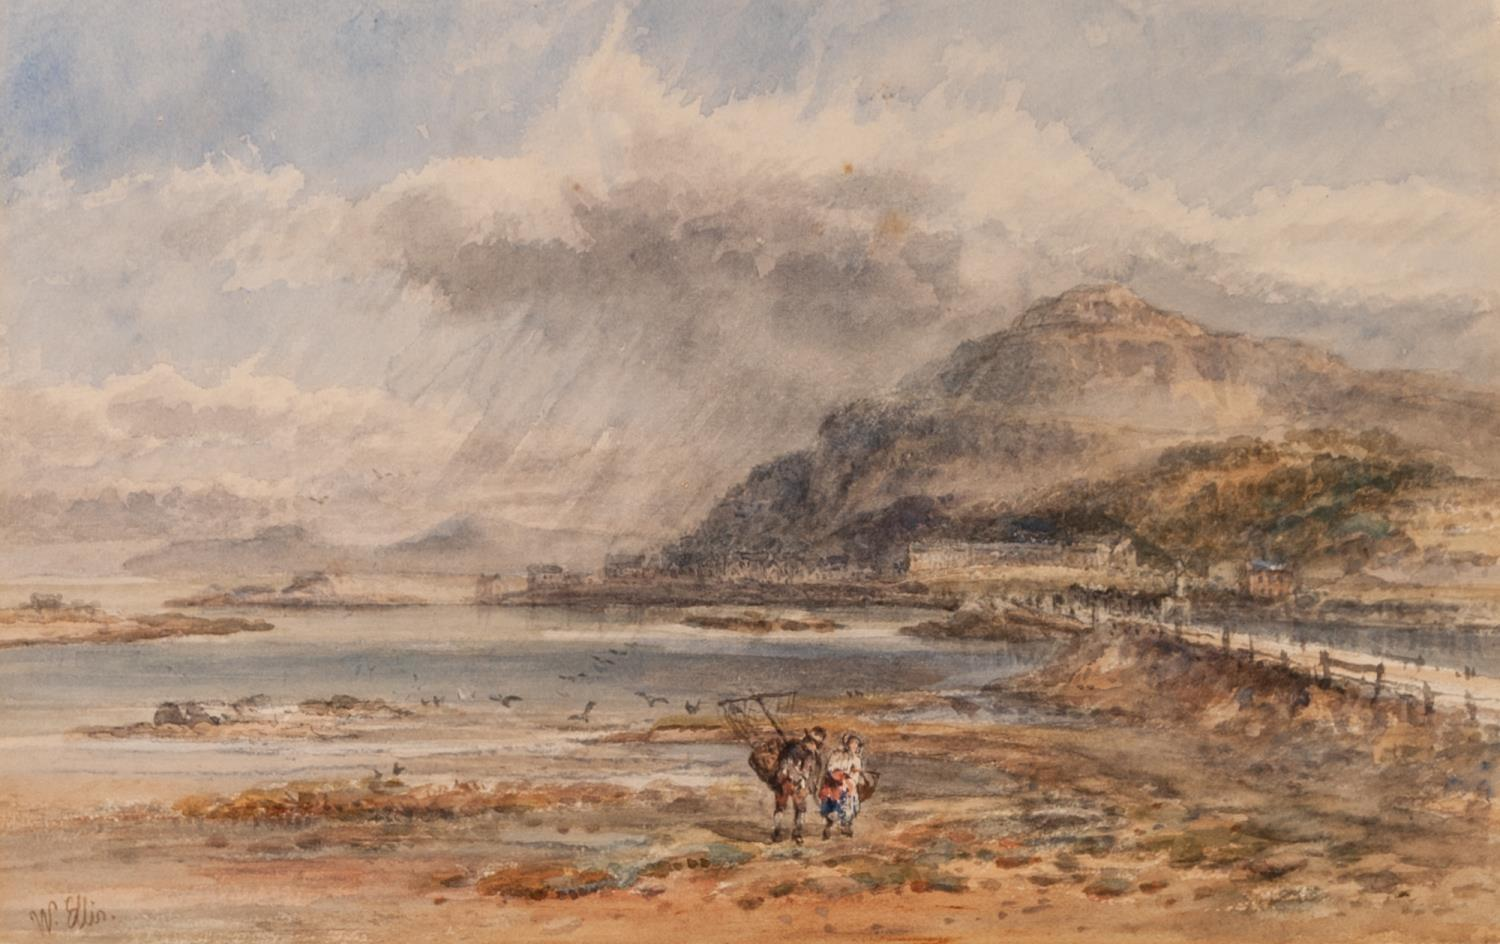 Lot 196 - WILLIAM ELLIS (NINETEENTH CENTURY) WATERCOLOUR DRAWING Beach scene with shrimpers in the